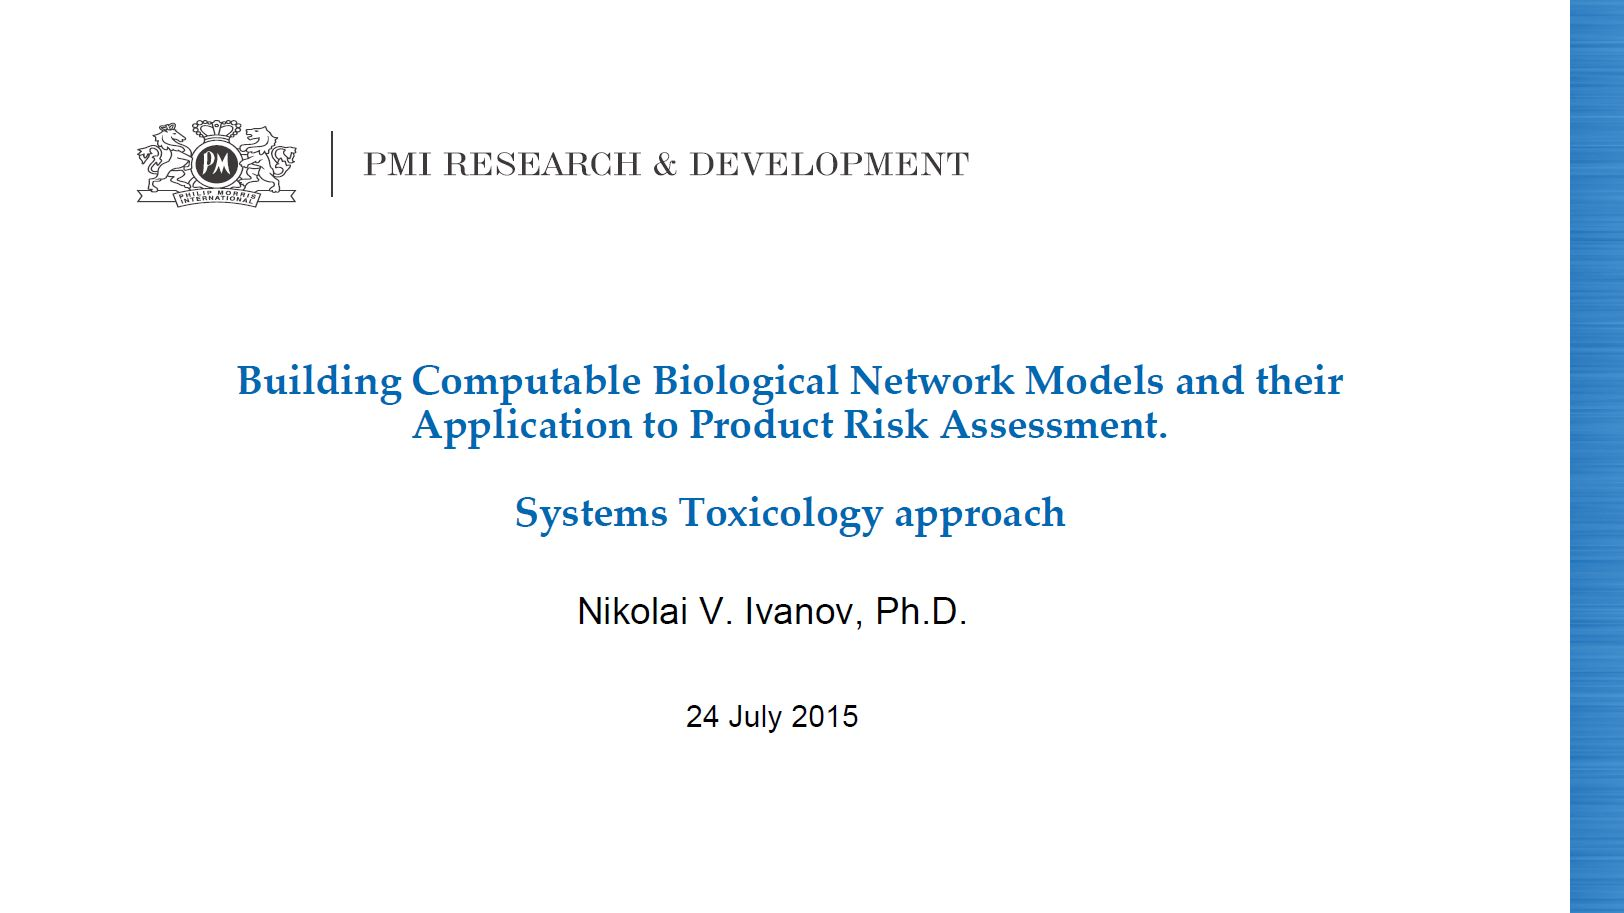 n._ivanov_building_computable_biological_network_models